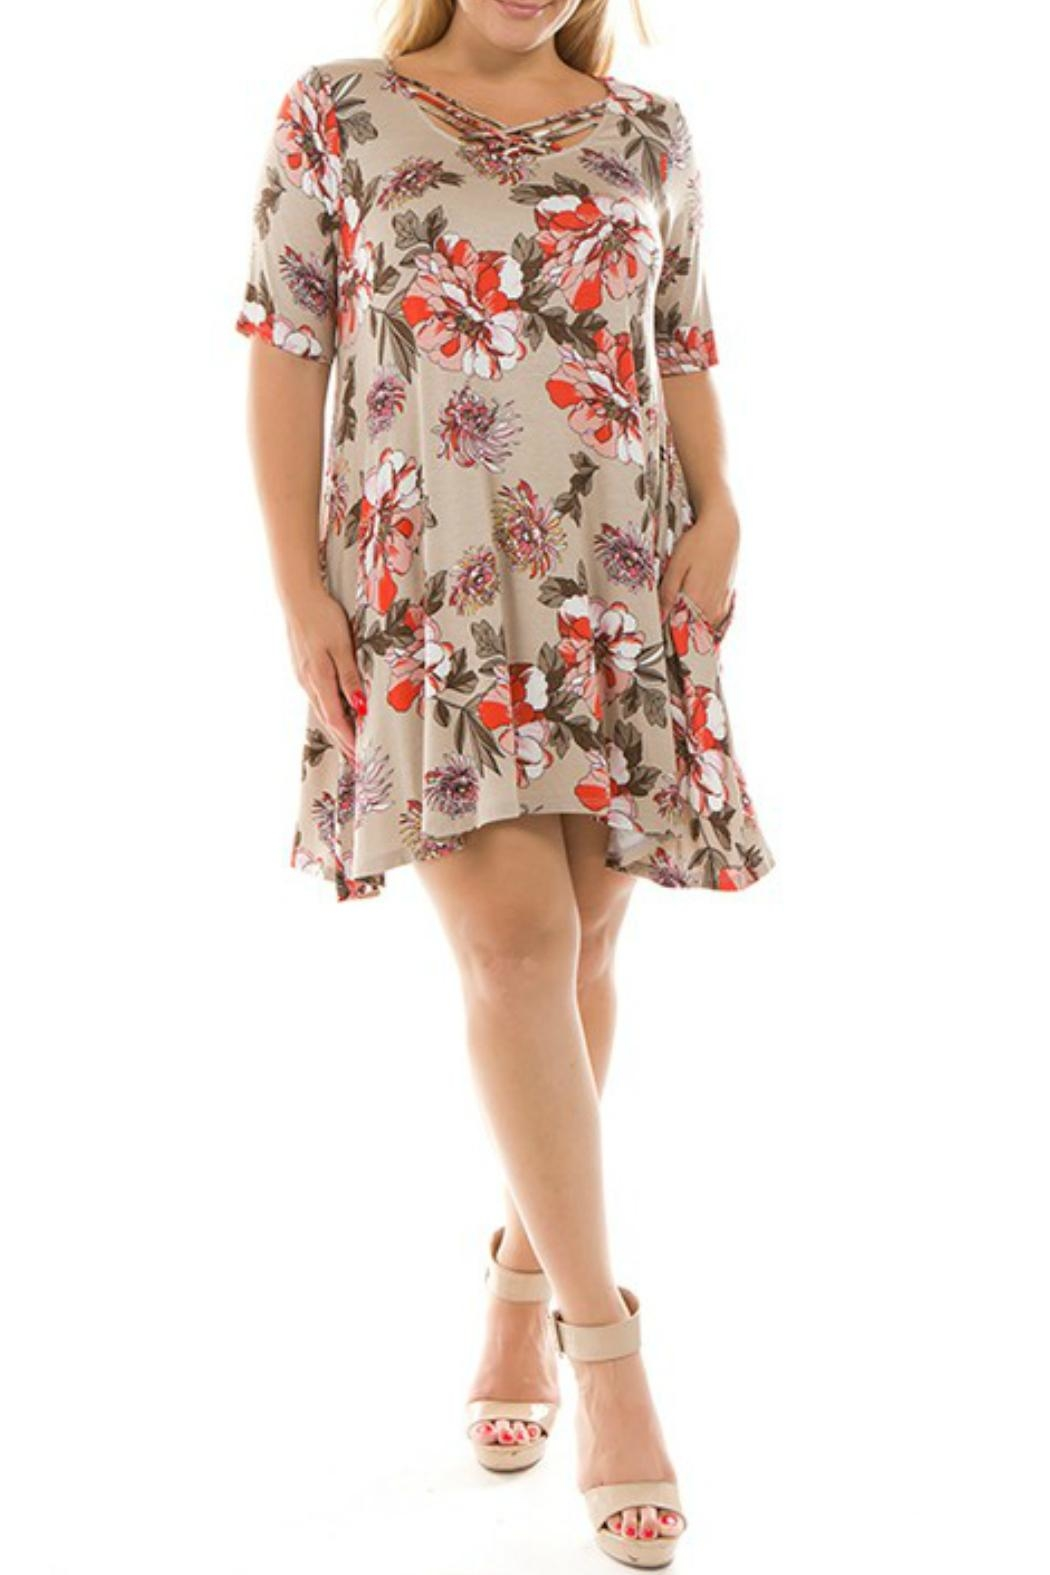 Spin USA Floral Criss-Cross Dress - Front Cropped Image